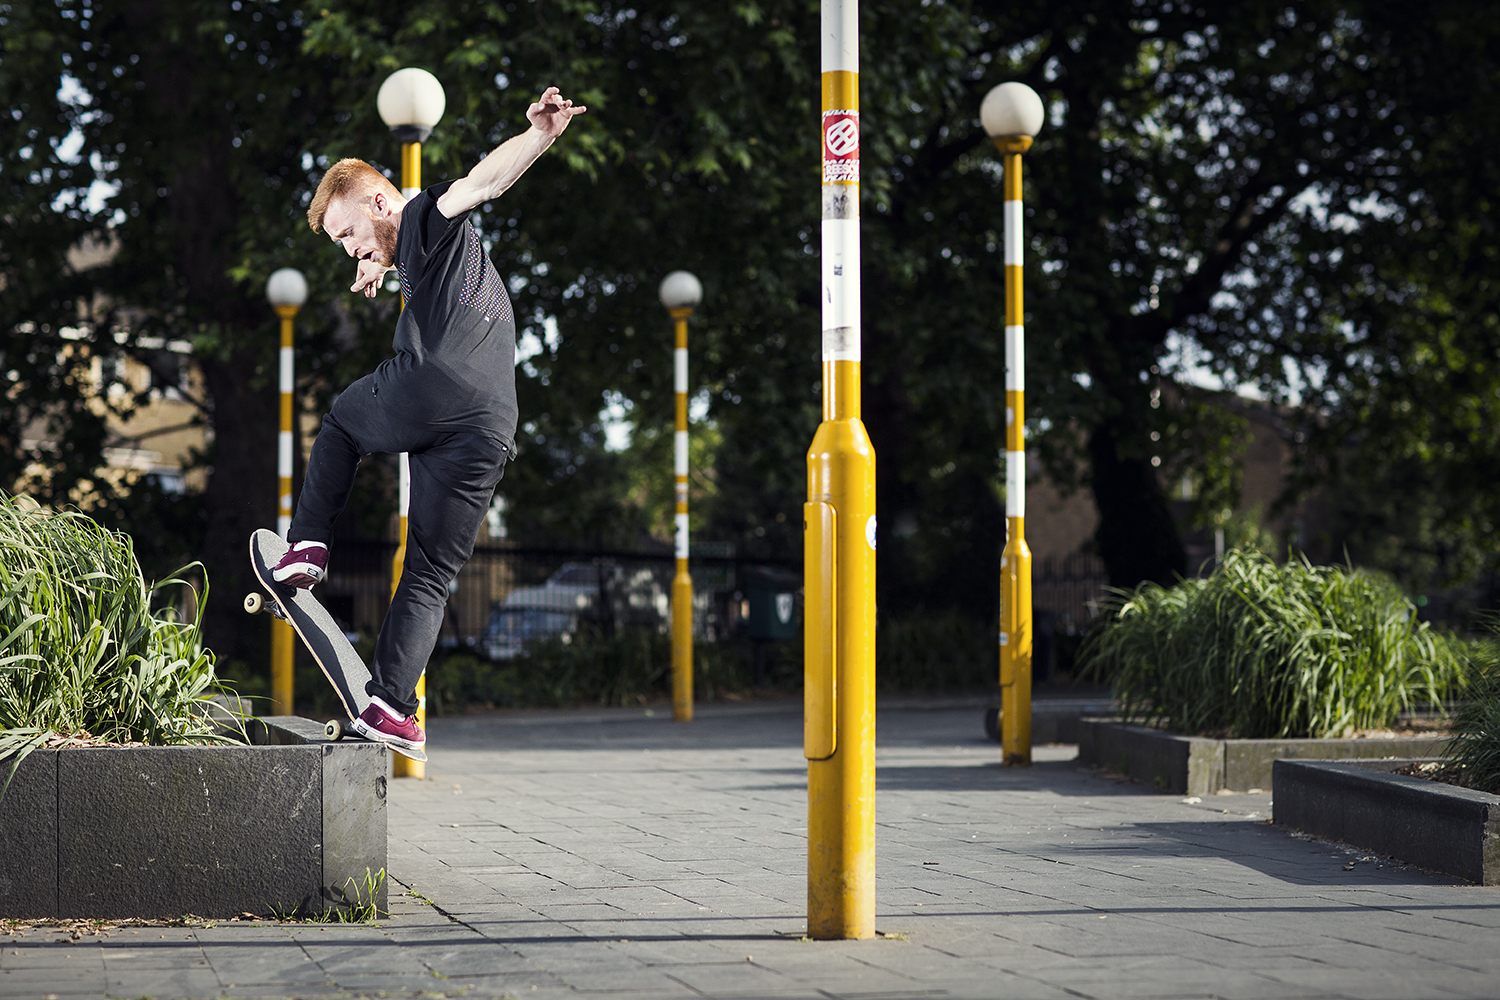 Charlie Munro | BS 180 Fakie 5-0 FS out